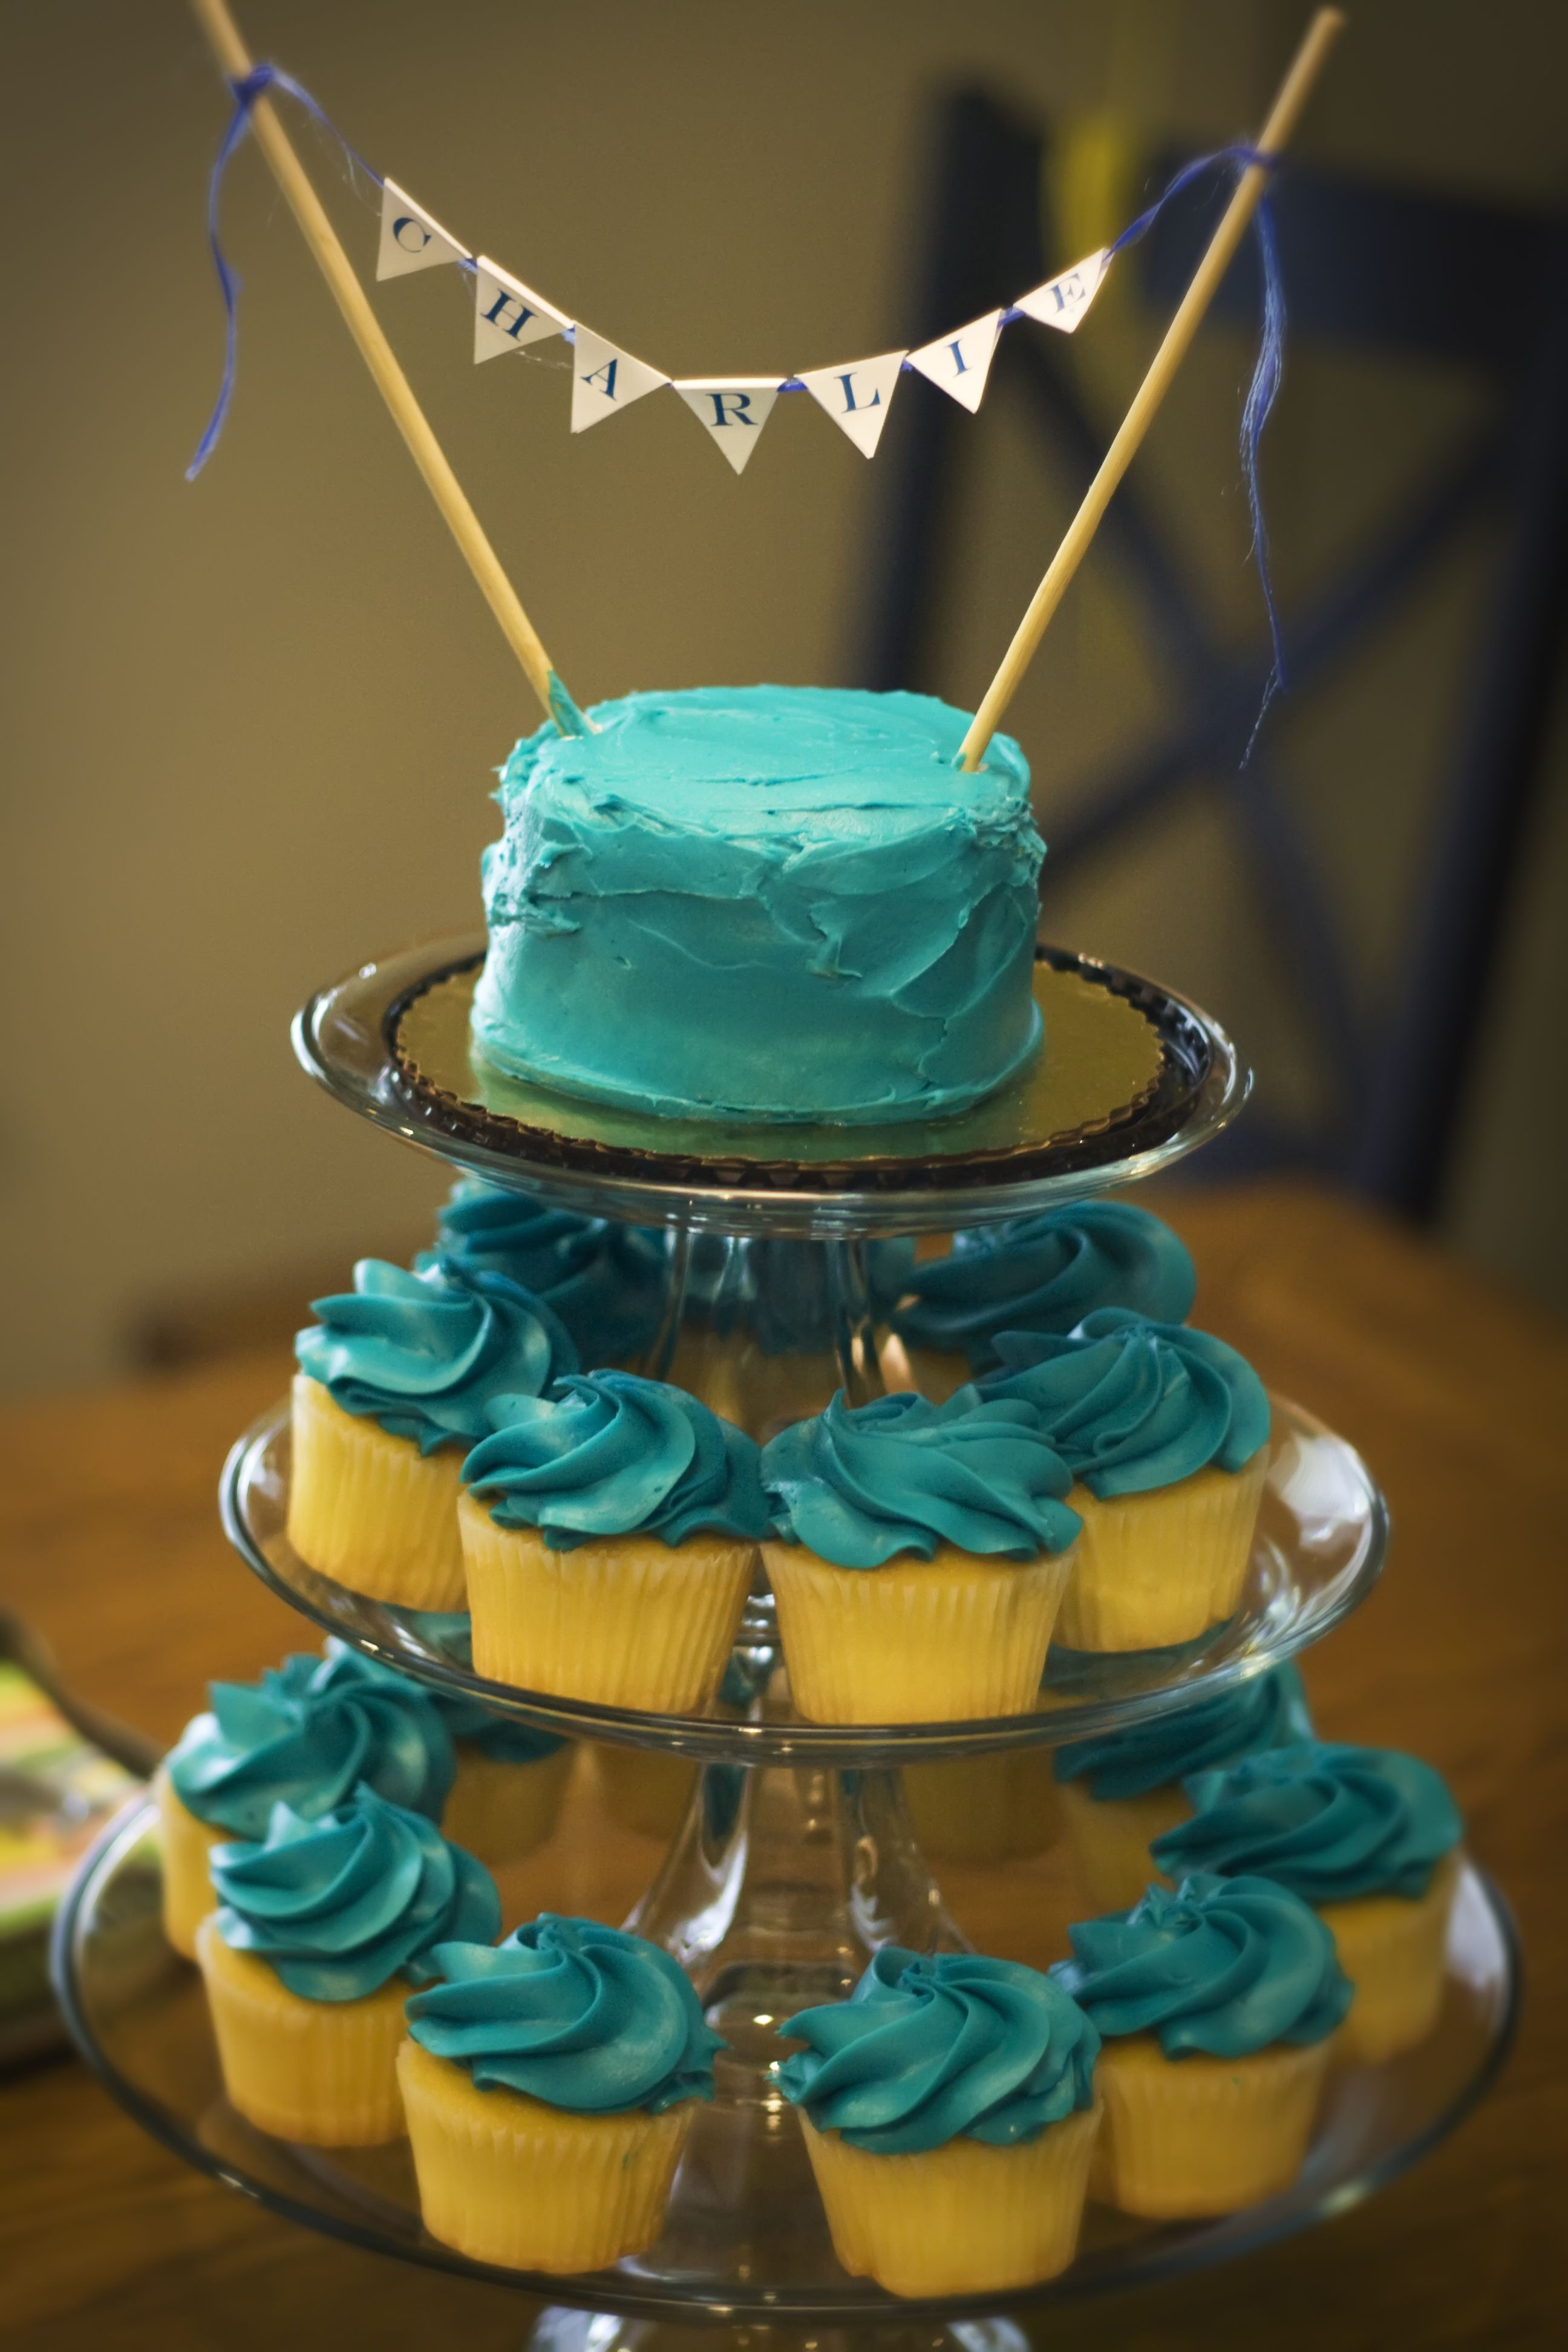 Kroger cupcakes and smash cakeget a three tiered cake stand and